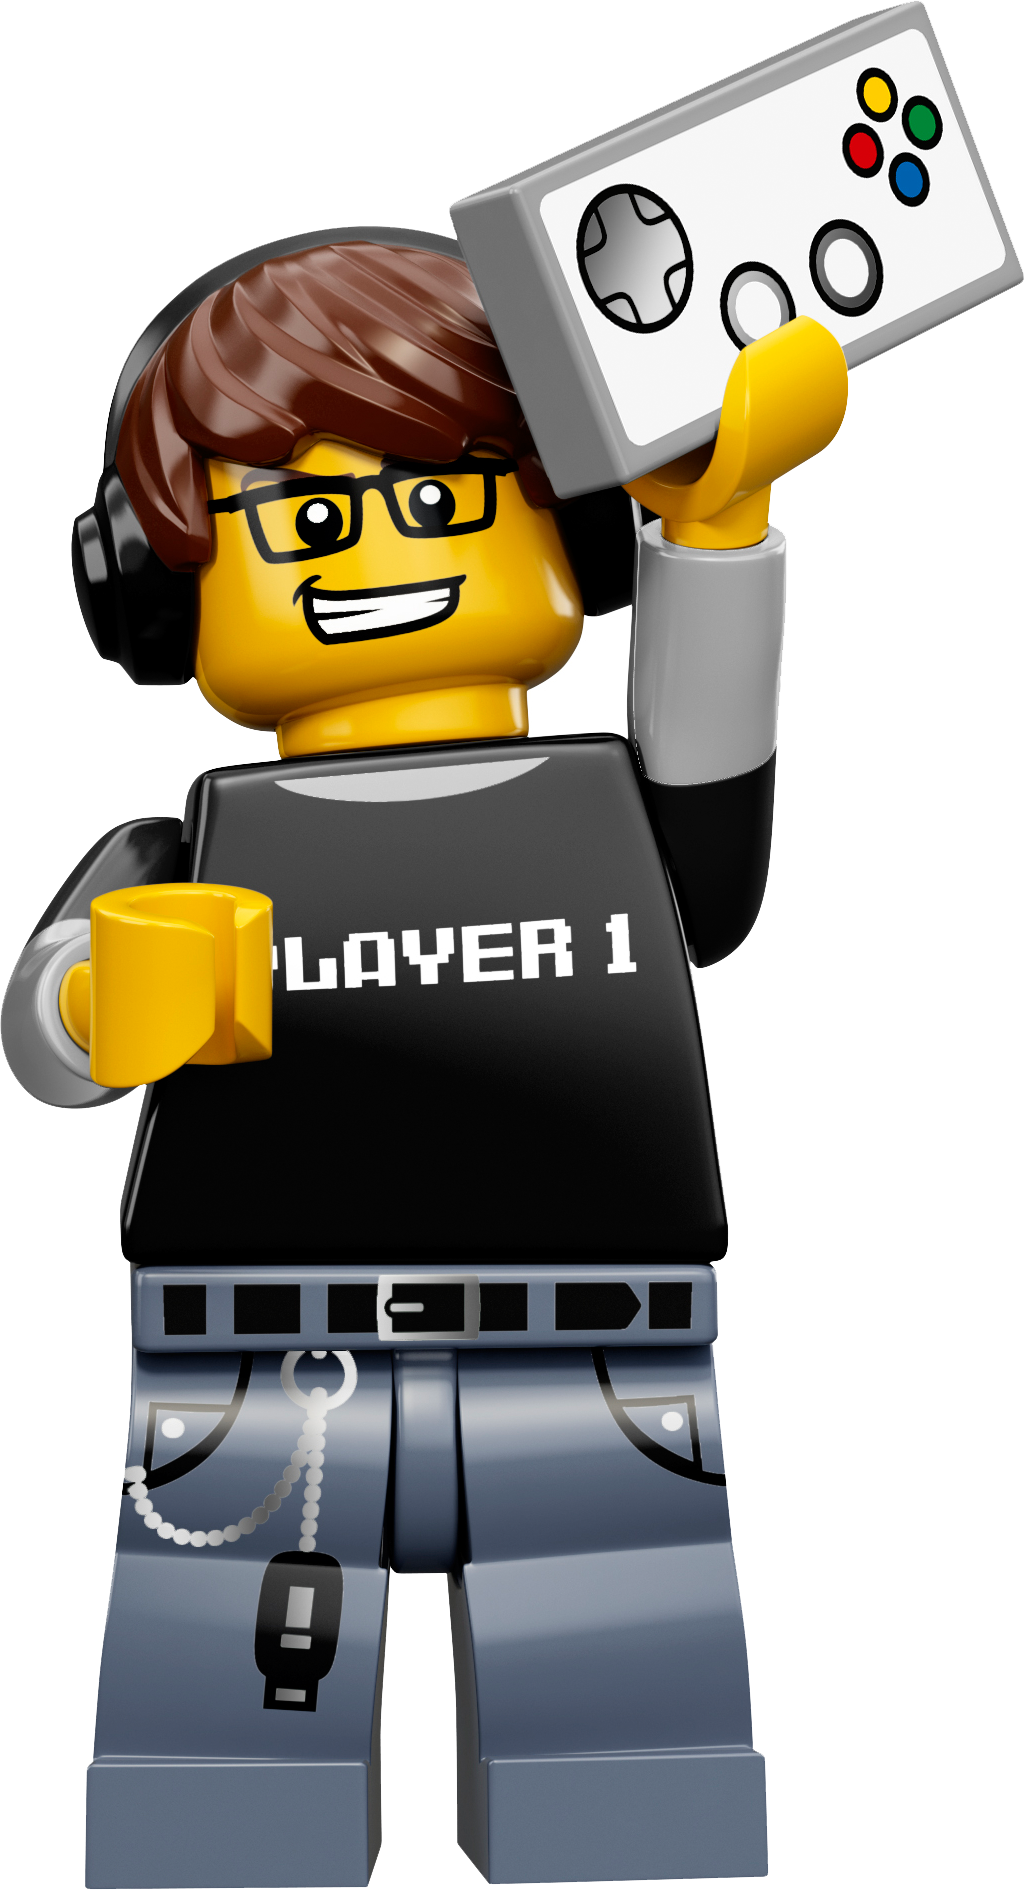 Lego minifigure png. Images of spacehero minifigures